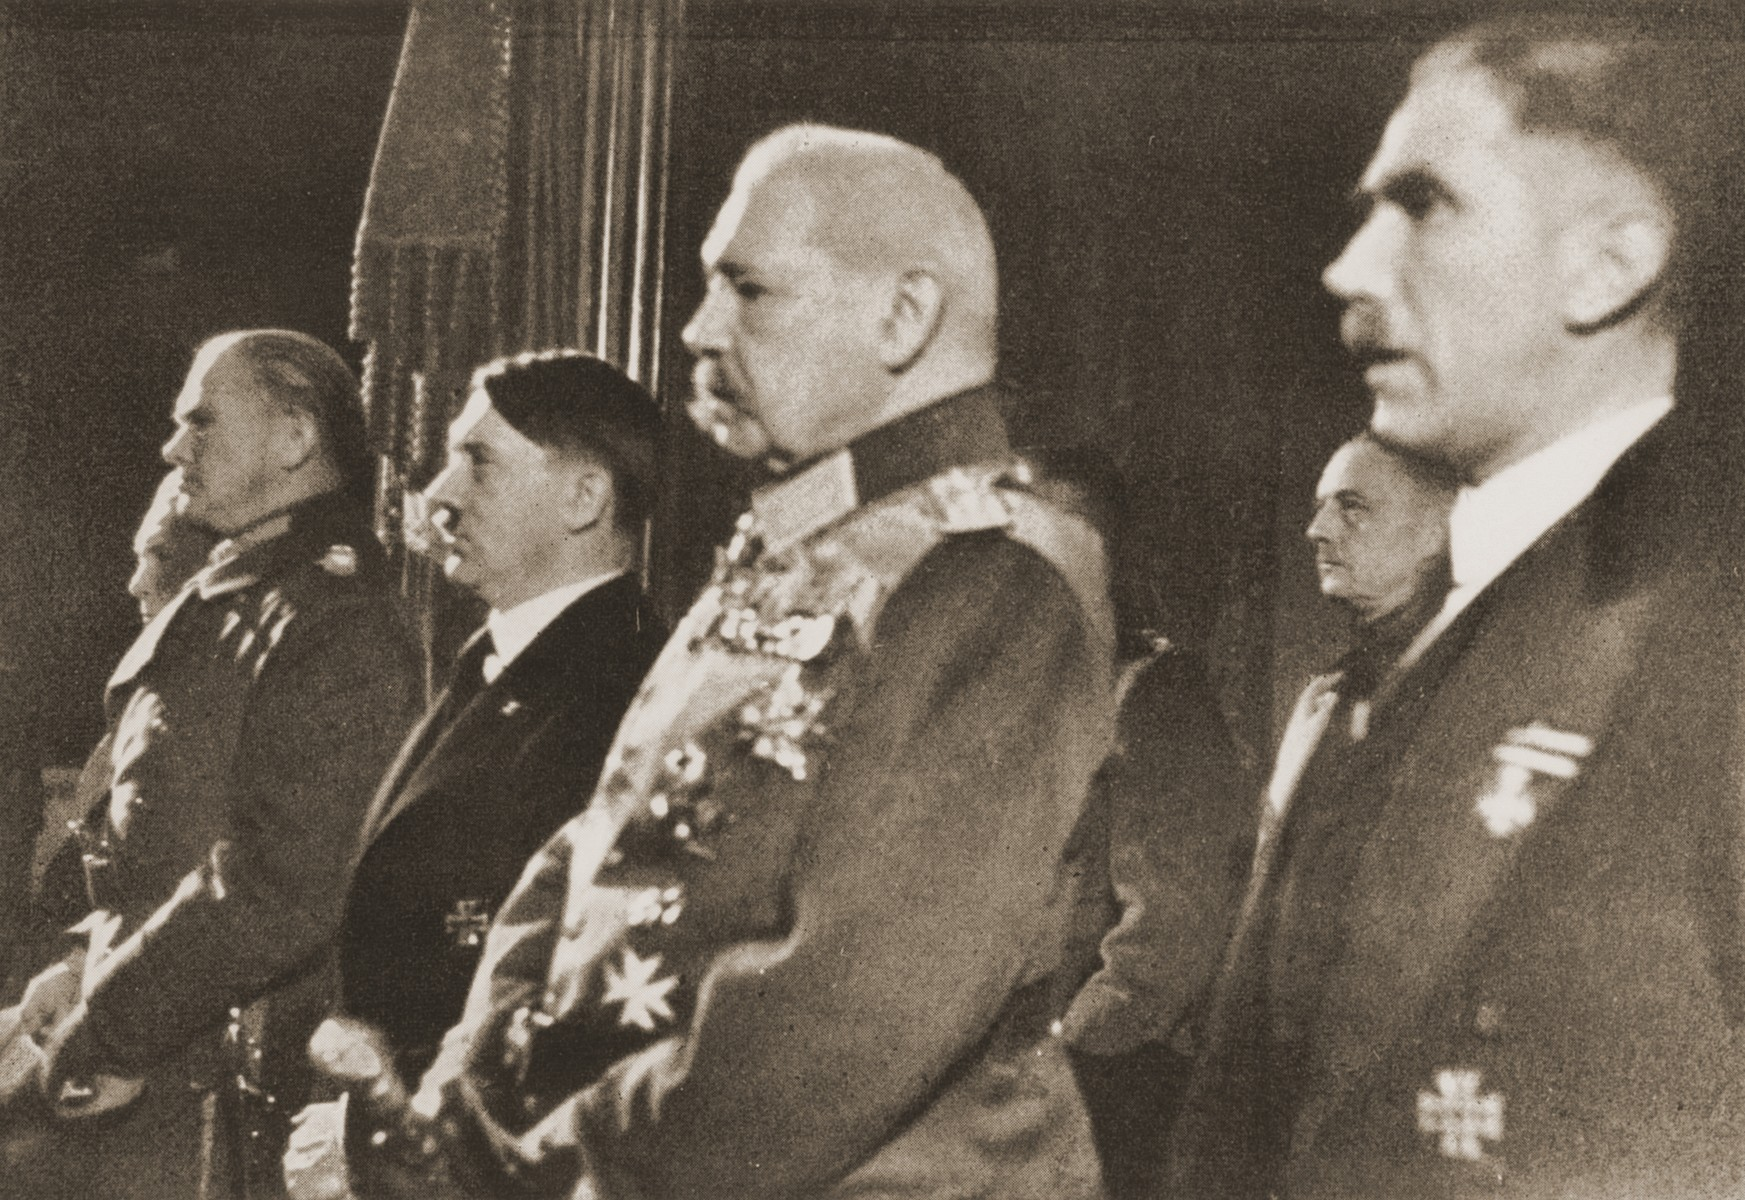 Members of the German leadership attend a ceremony honoring German soldiers killed in World War I at the National Opera in Berlin.  Pictured from right to left are: Franz von Papen, Paul von Hindenburg, Adolf Hitler and Werner von Blomberg.